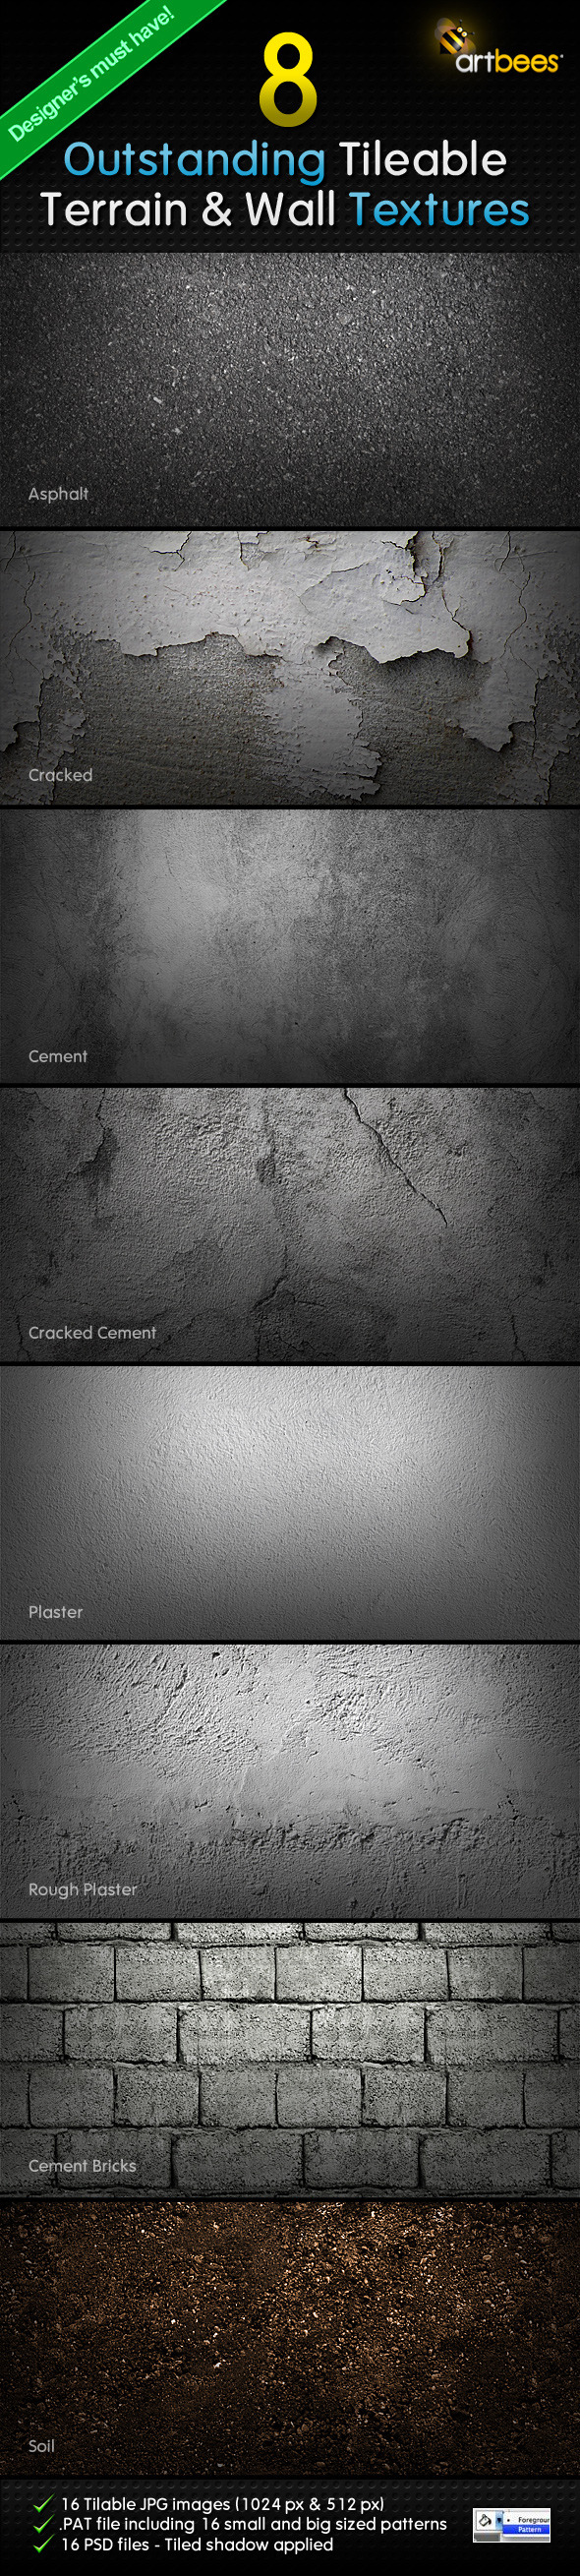 8 Tileable Terrain & Wall Textures - Textures / Fills / Patterns Photoshop